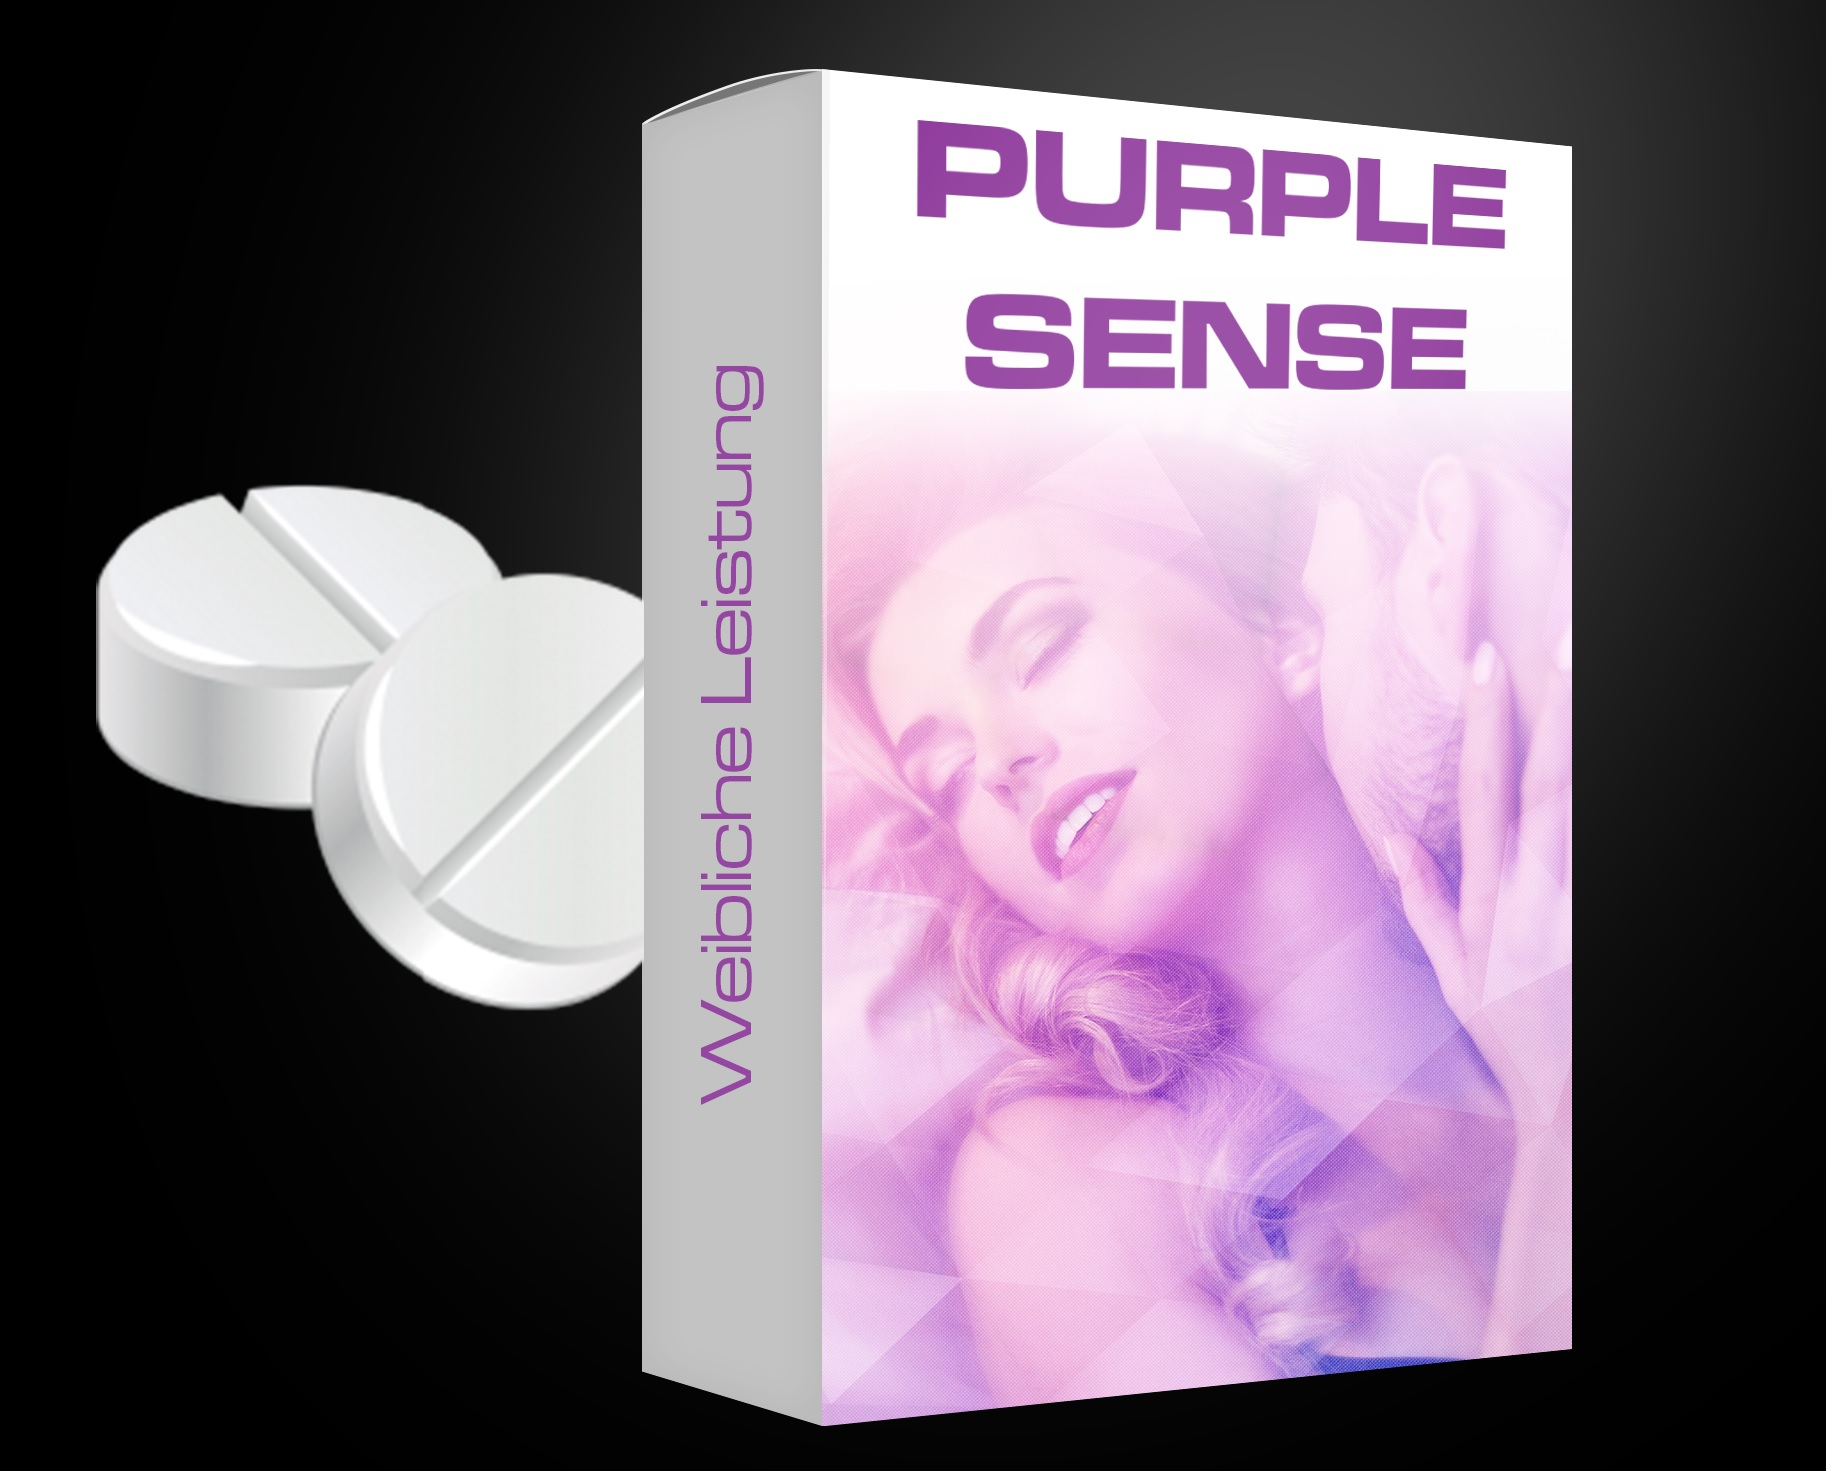 Image of the illigal product: Purple Sense